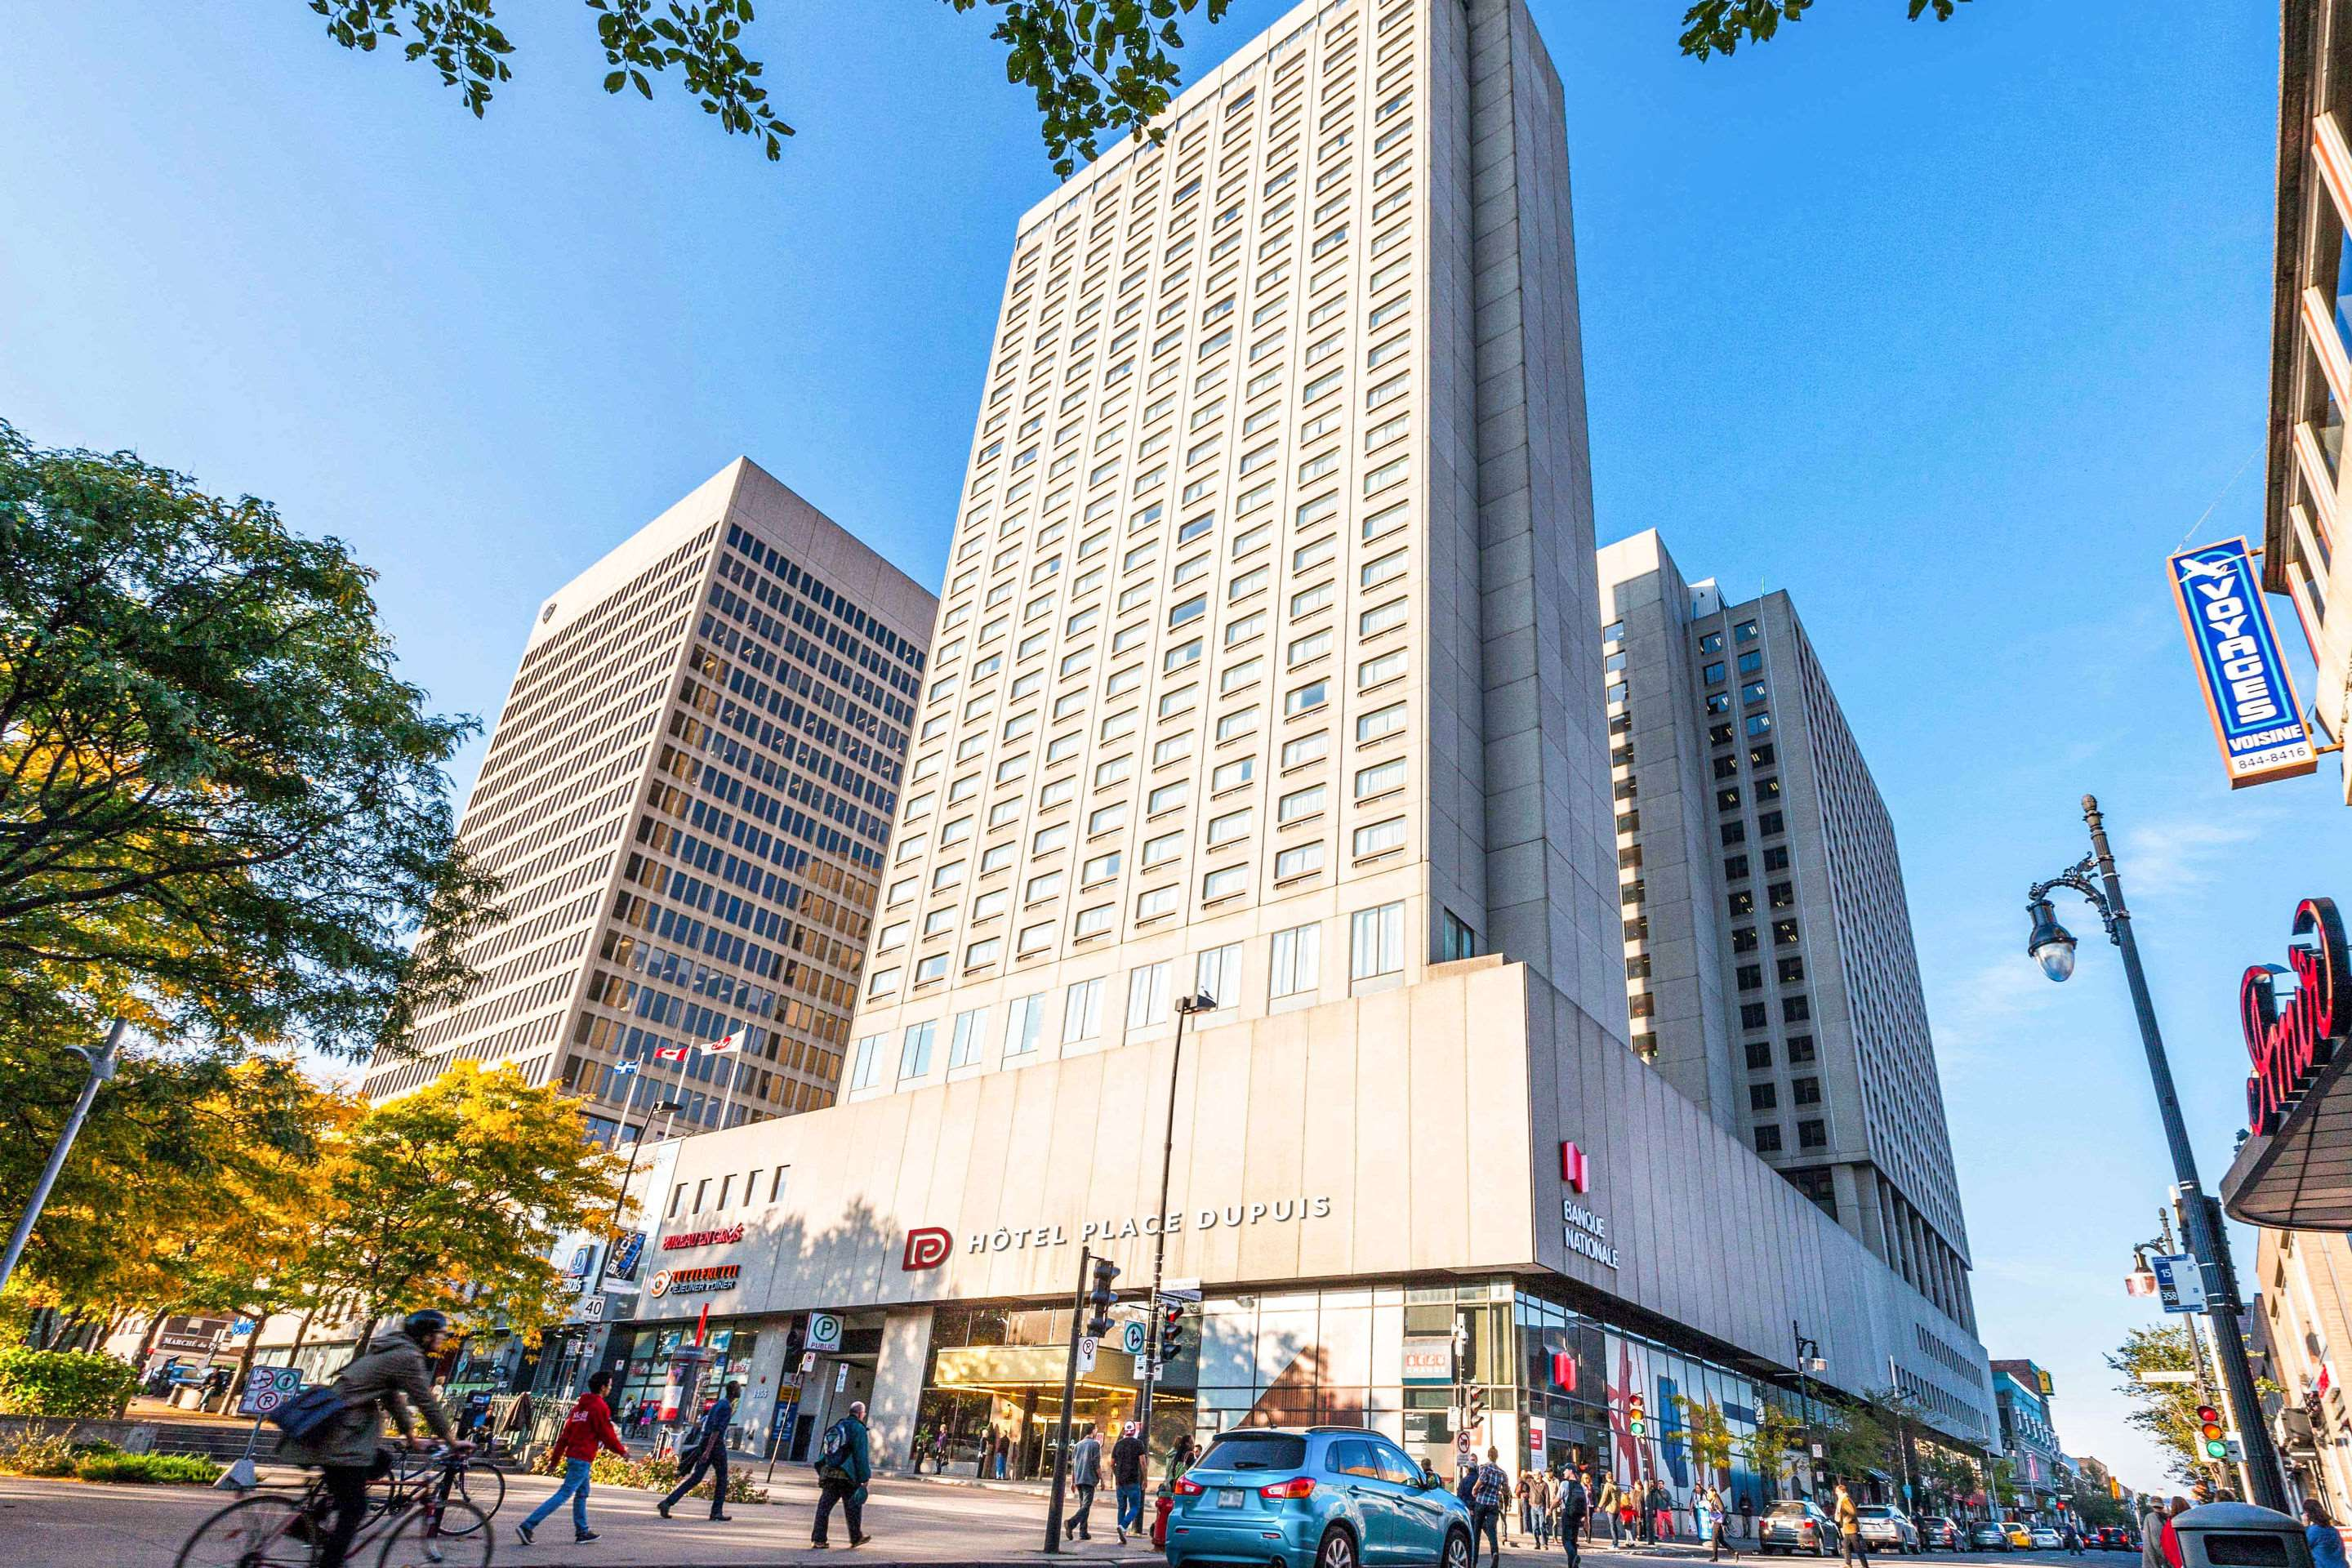 Hotel Place Dupuis Montreal Downtown Ascend Hotel Collection